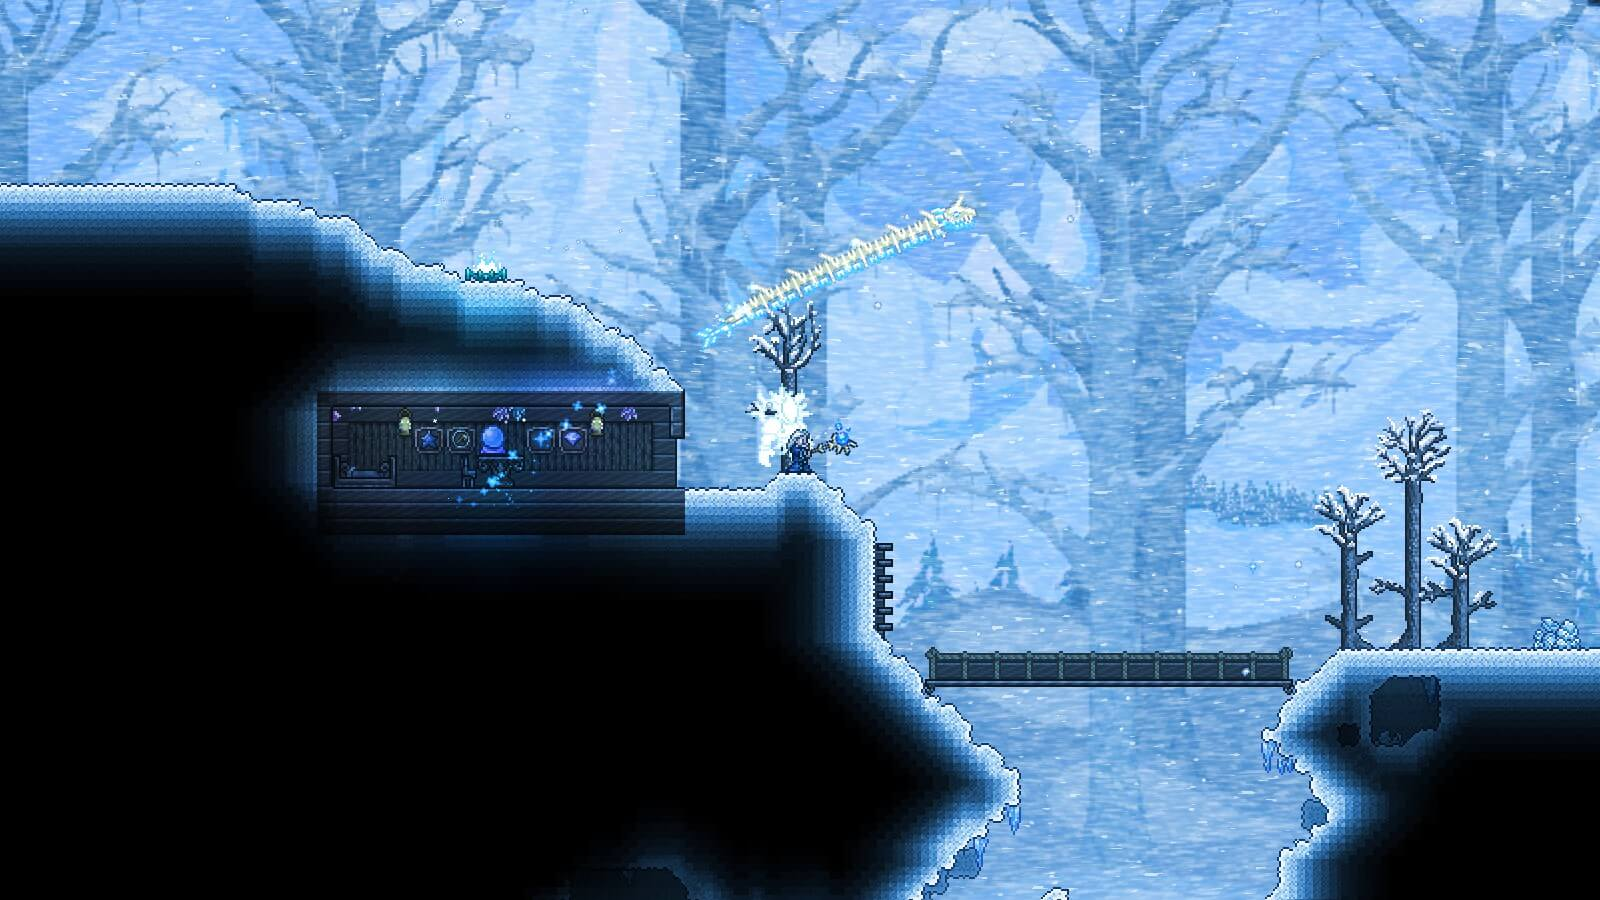 Terraria | Steam | Opium Pulses - Cheap Prices, Great Service